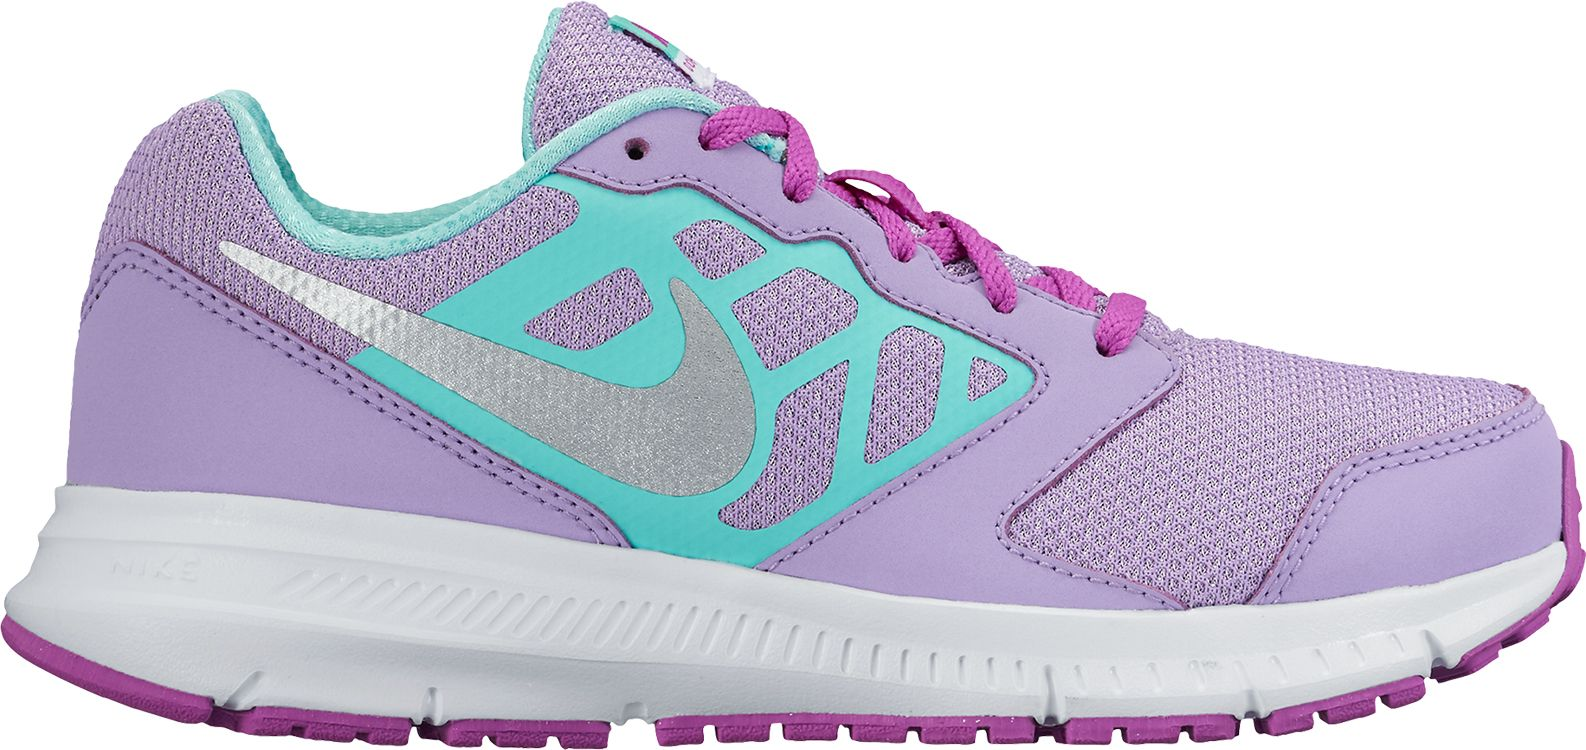 kids running shoes product image · nike kidsu0027 grade school downshifter 6 running shoes MLAGCIM